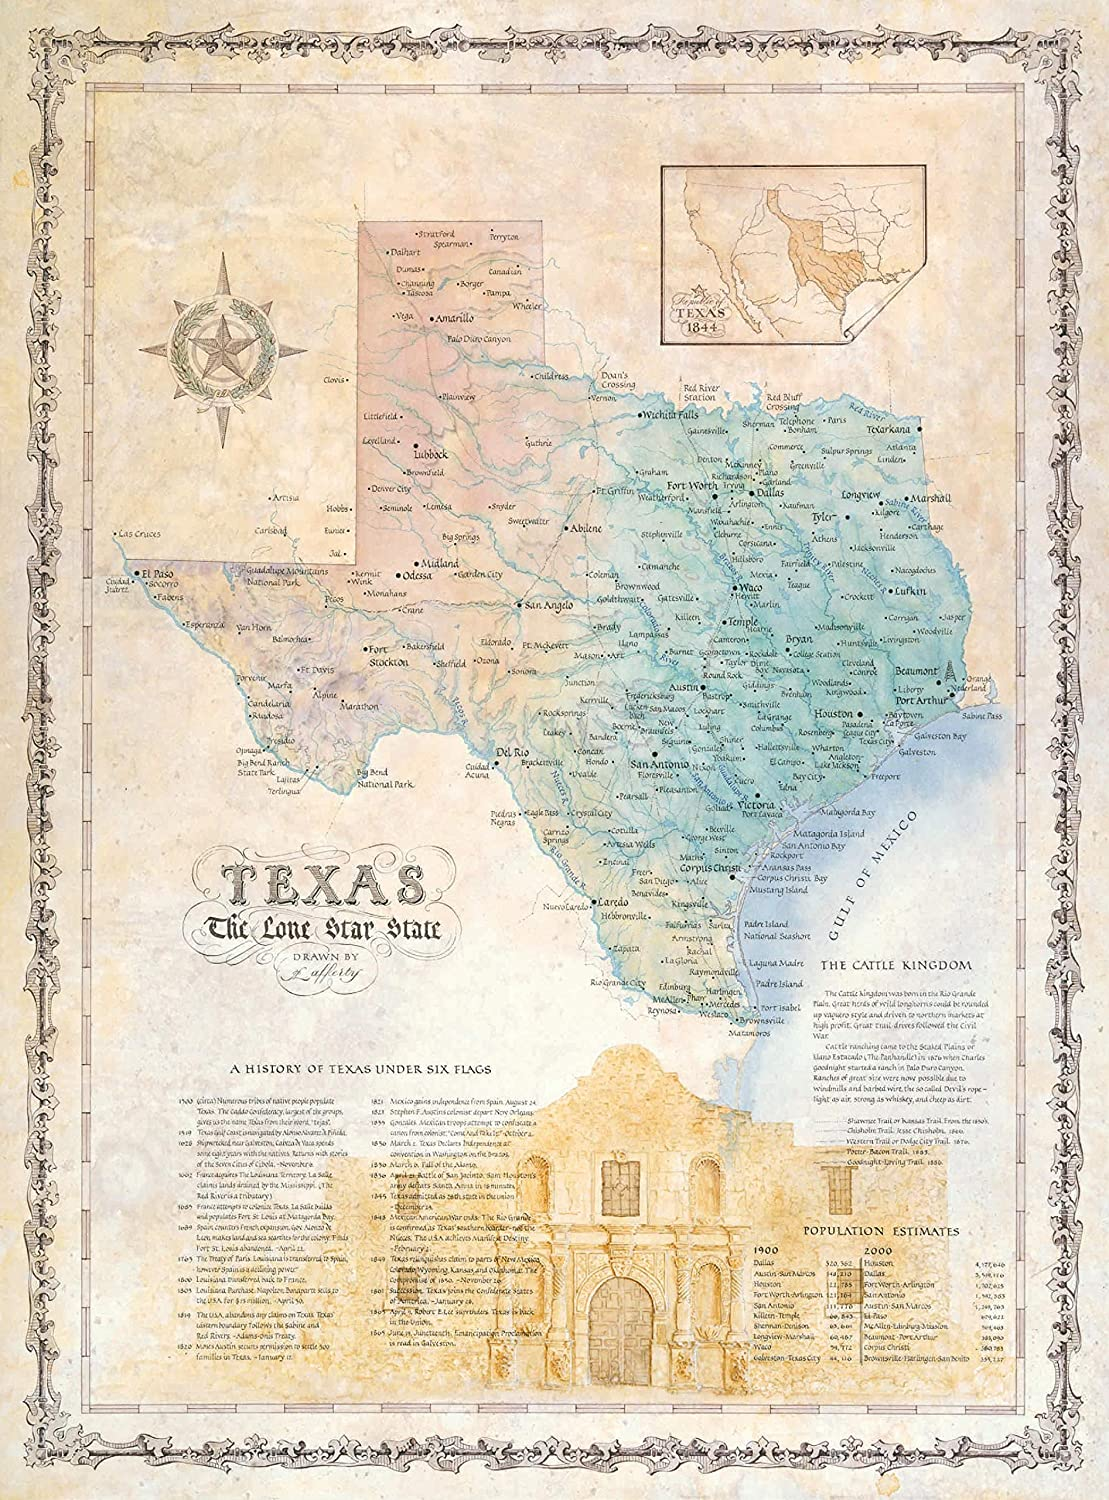 One Treasure Limited Antique Vintage Old World State Of Texas Usa Texas Map With The Alamo Wall Decor Posters Prints